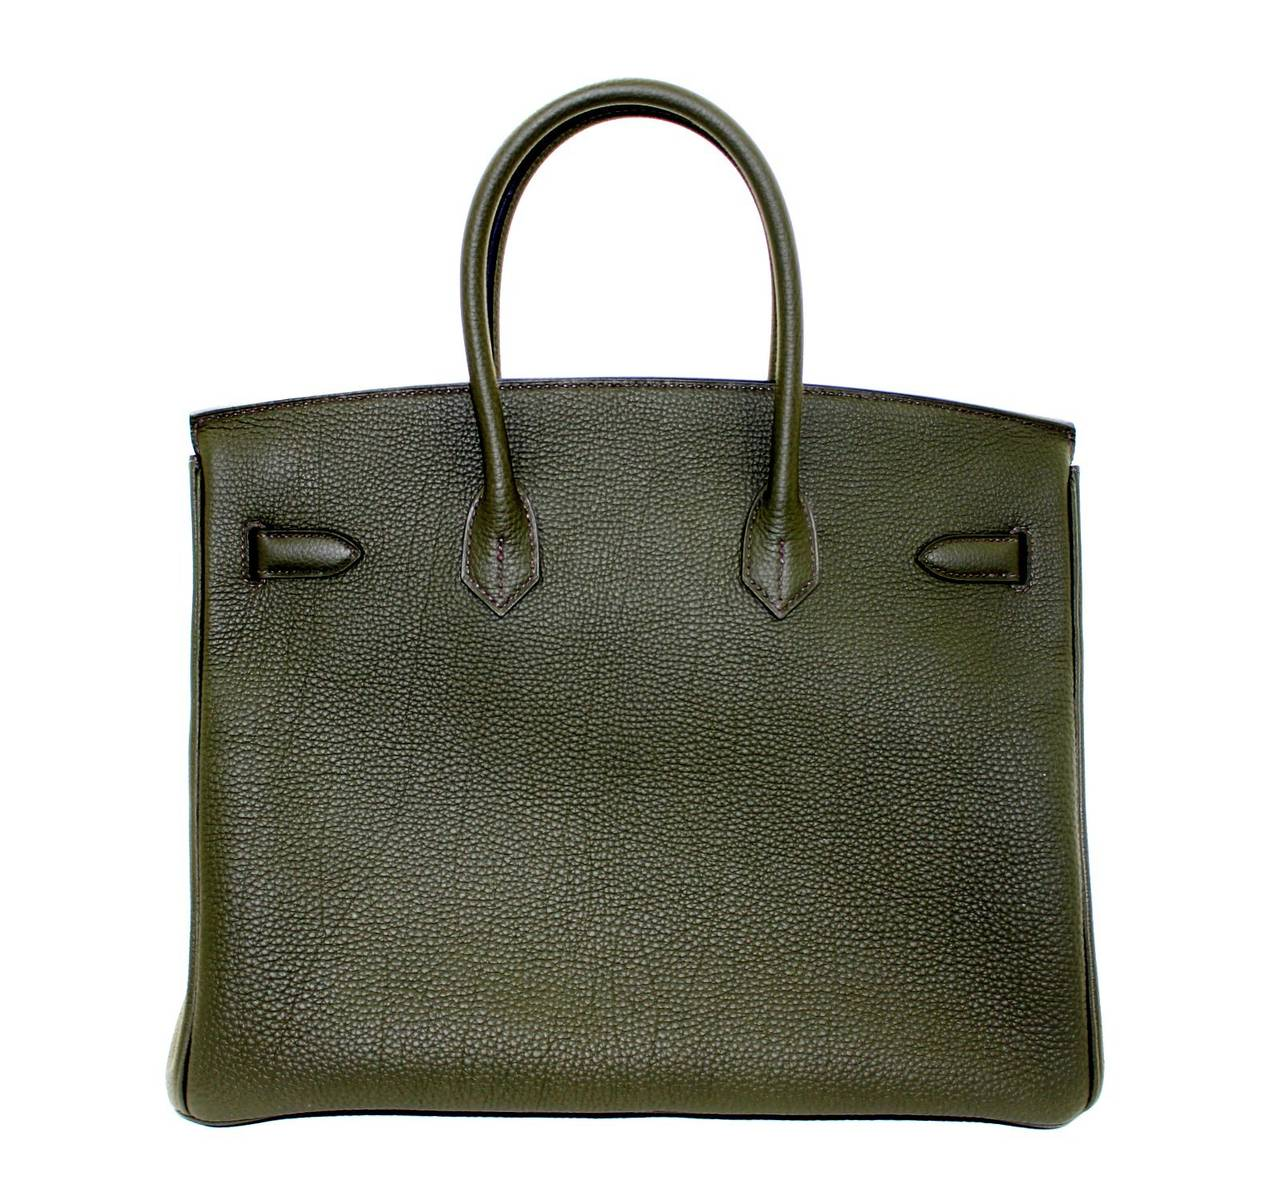 Hermes Birkin Bag in Vert Olive green Togo Leather, 35 cm size 2